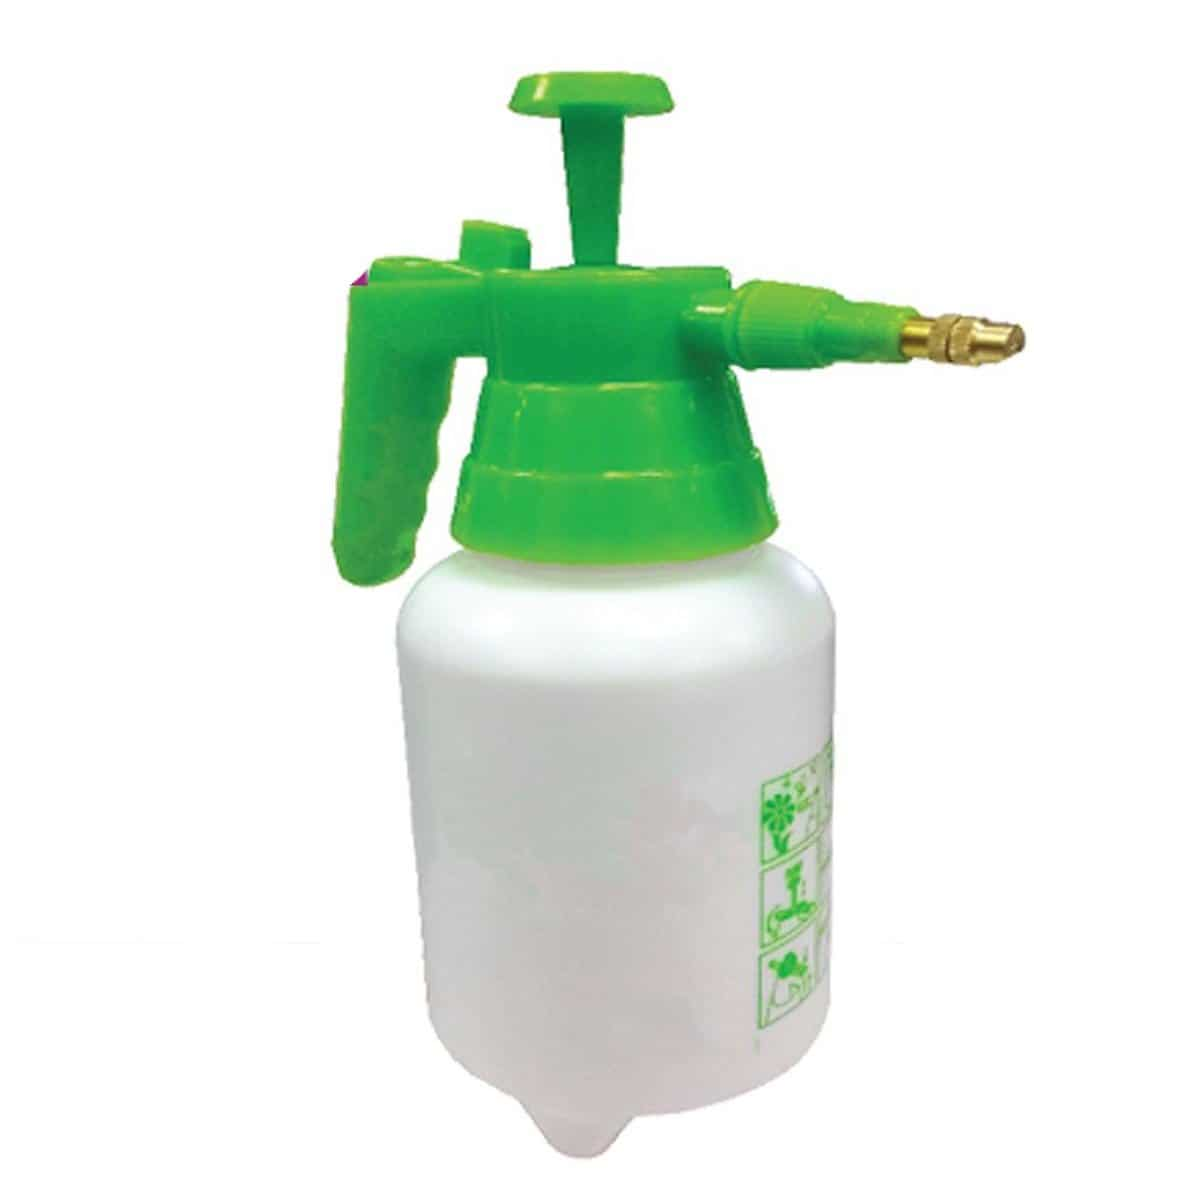 ANEKA 2L Pressure Sprayer Manual Pump Hand Held Garden Pump 2000ml